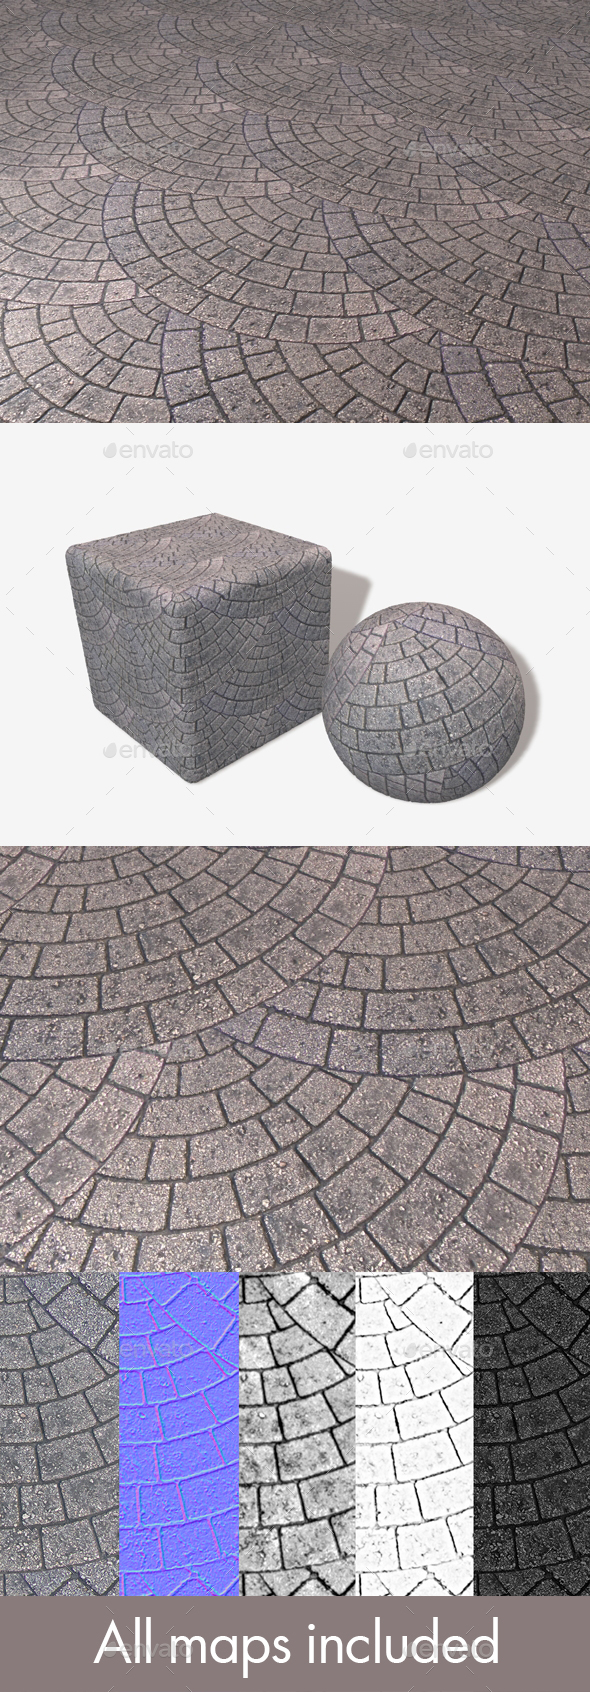 Brick Paving Circle Pattern Seamless Texture - 3DOcean Item for Sale